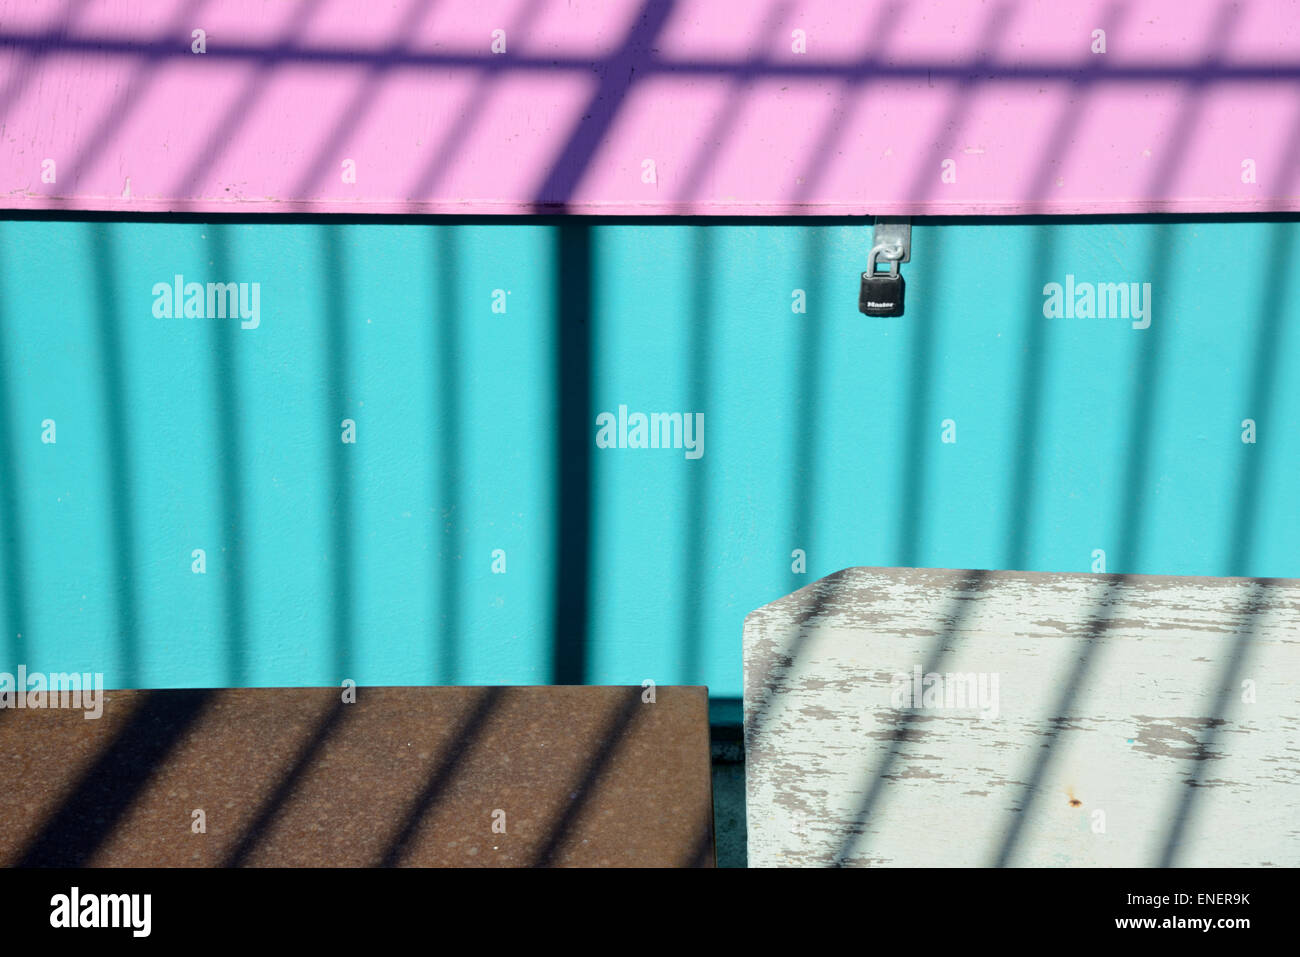 Colourful Turquoise & Pink Sheds & Shadow of Railings - Stock Image